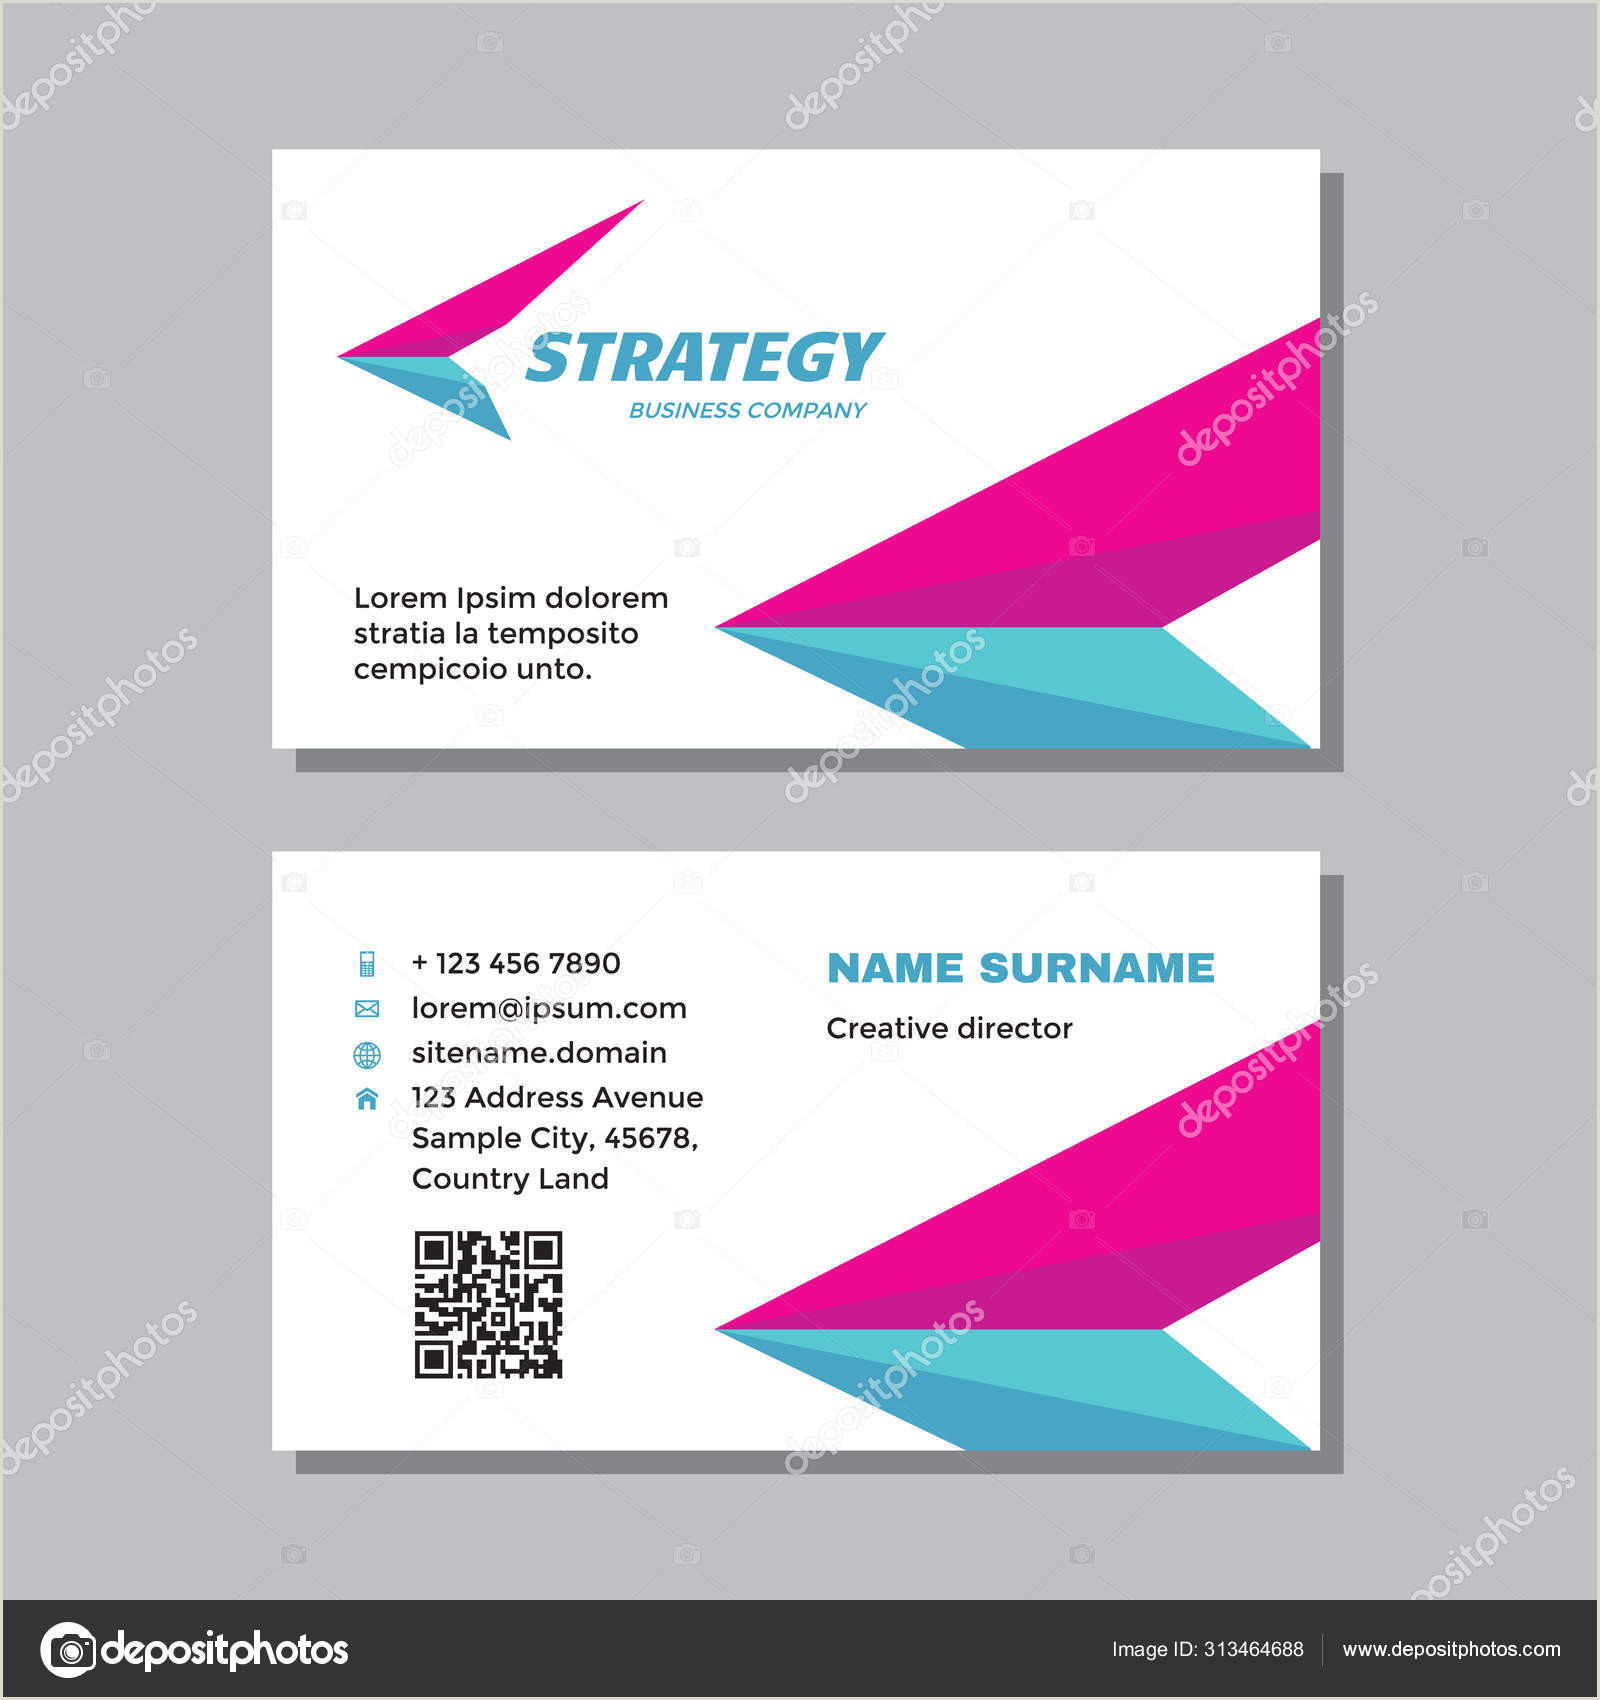 Business Card With Logo Business Visit Card Template With Logo Concept Design Wing Delivery Brand Vector Illustration